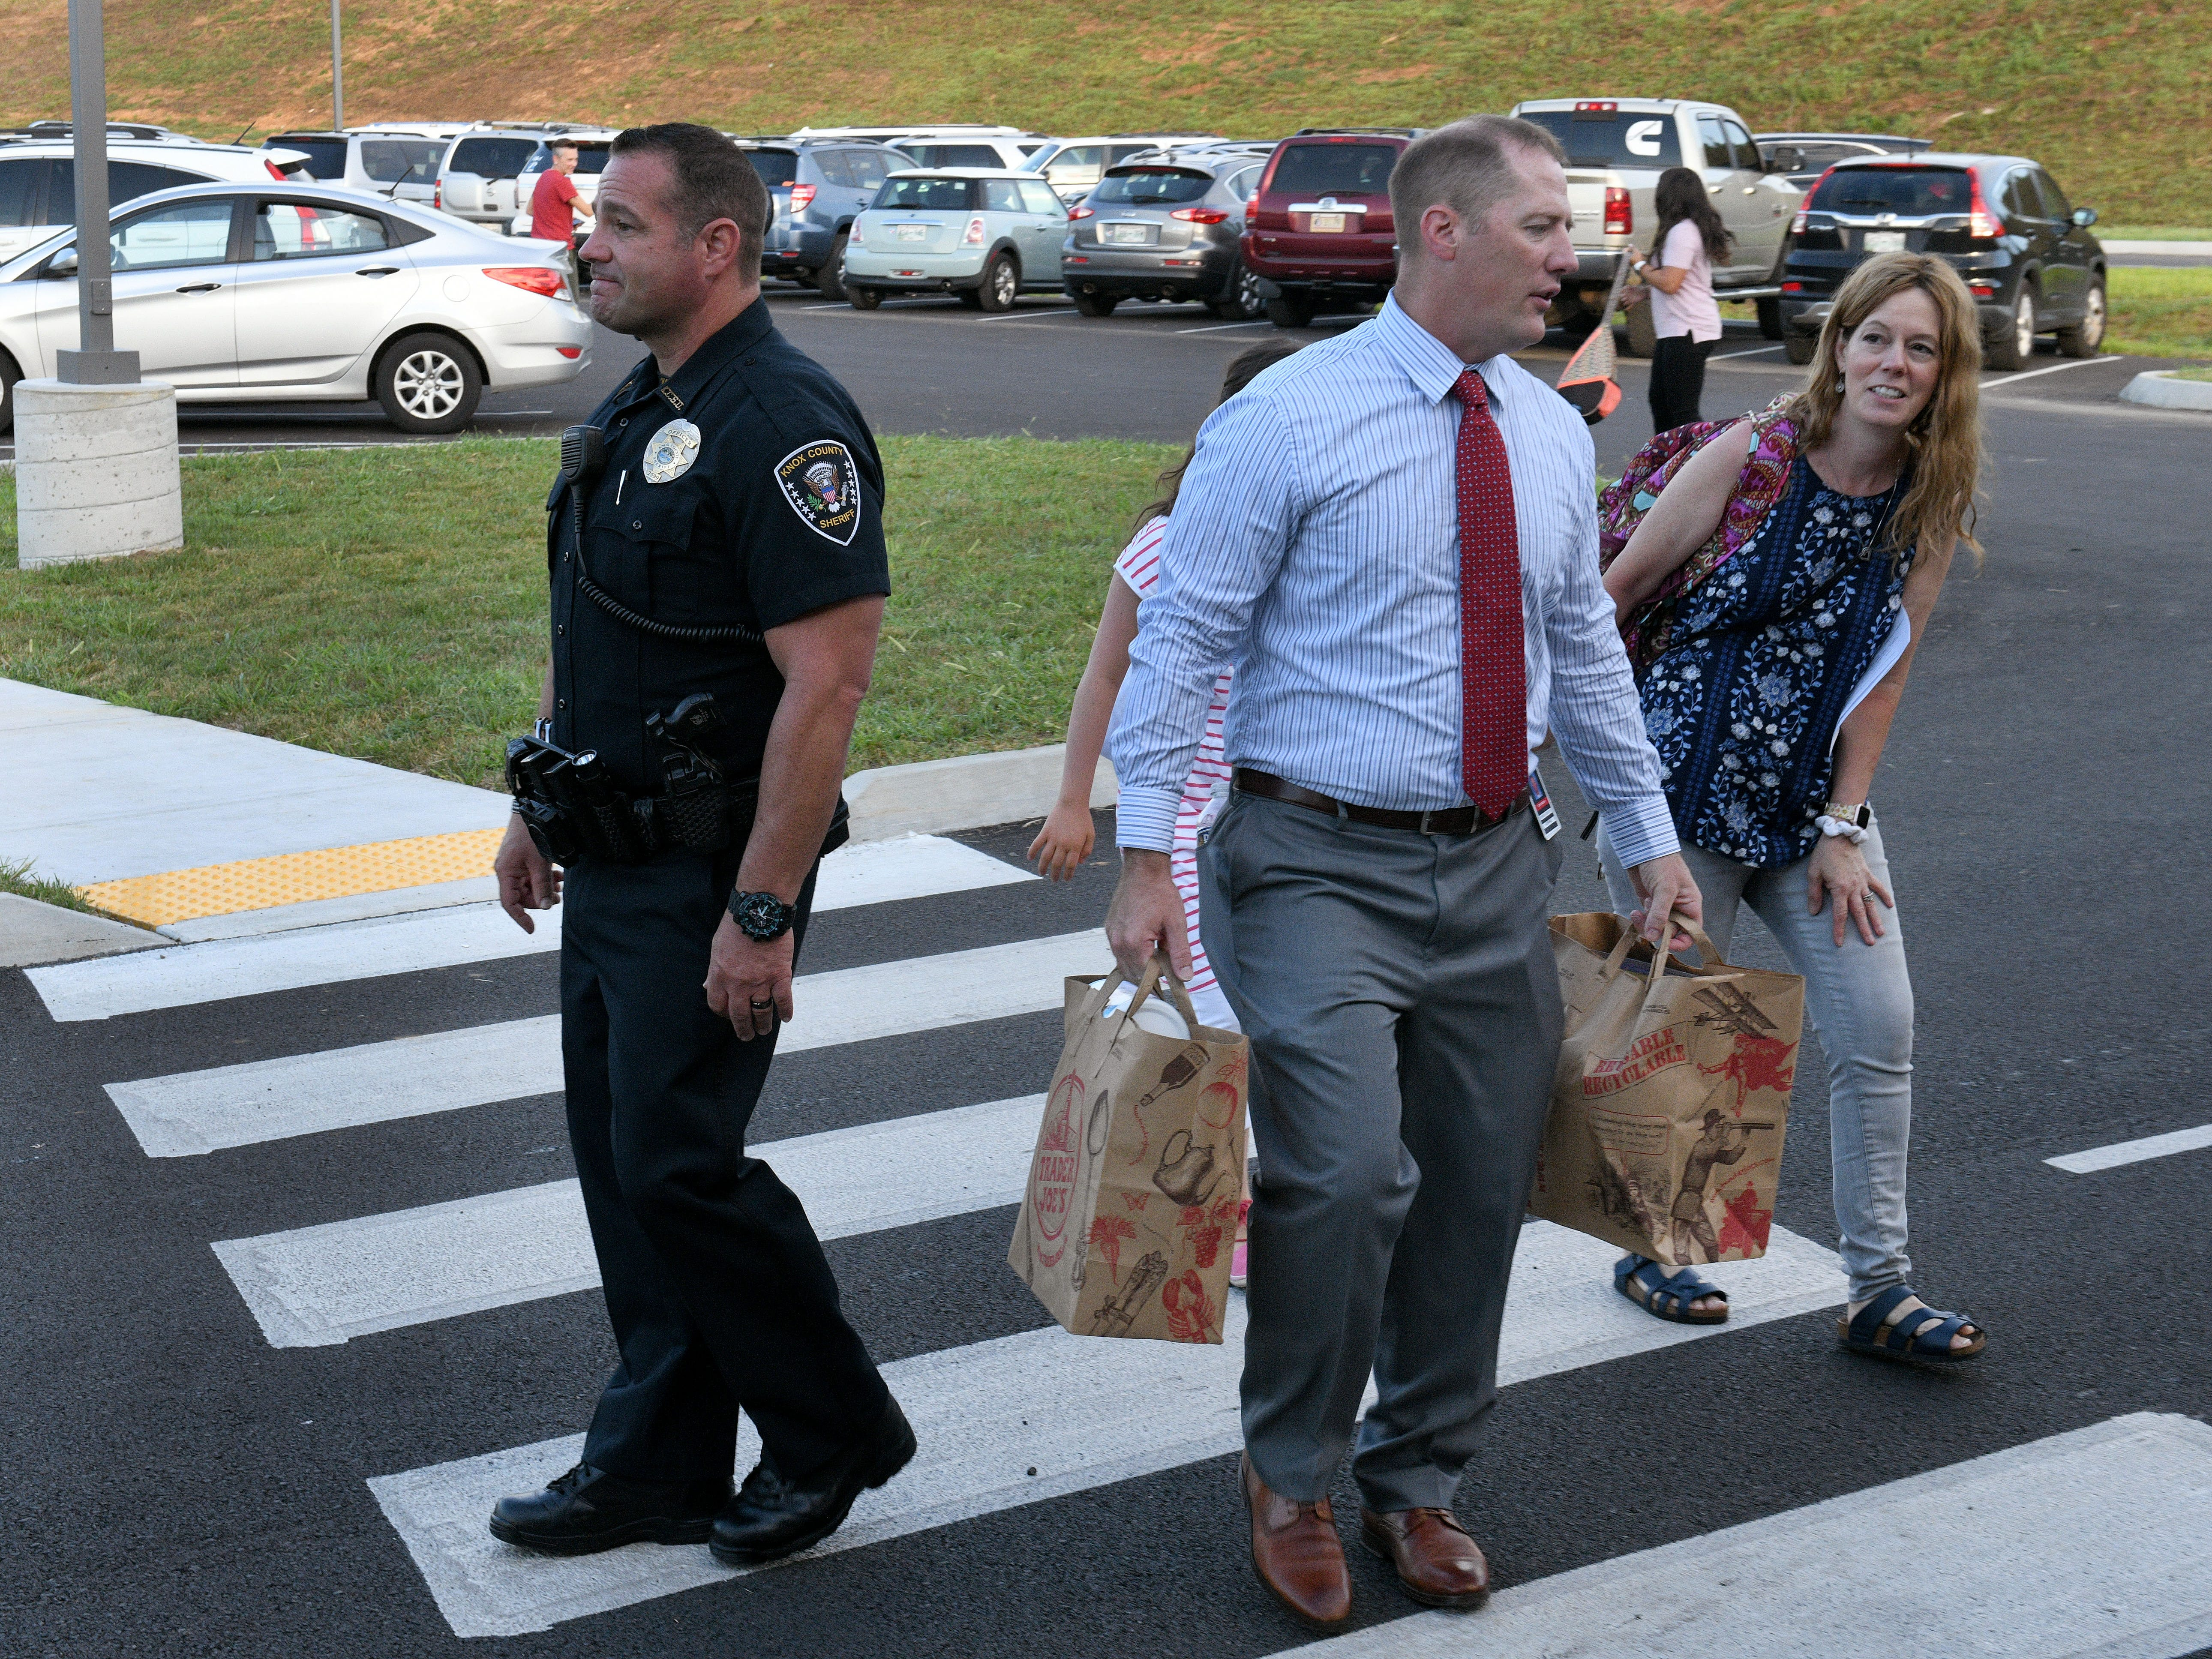 Hardin Valley Middle School Principal Cory Smith helps a student and her mother with packages while crossing the car rider line Wednesday, August 8, 2018.